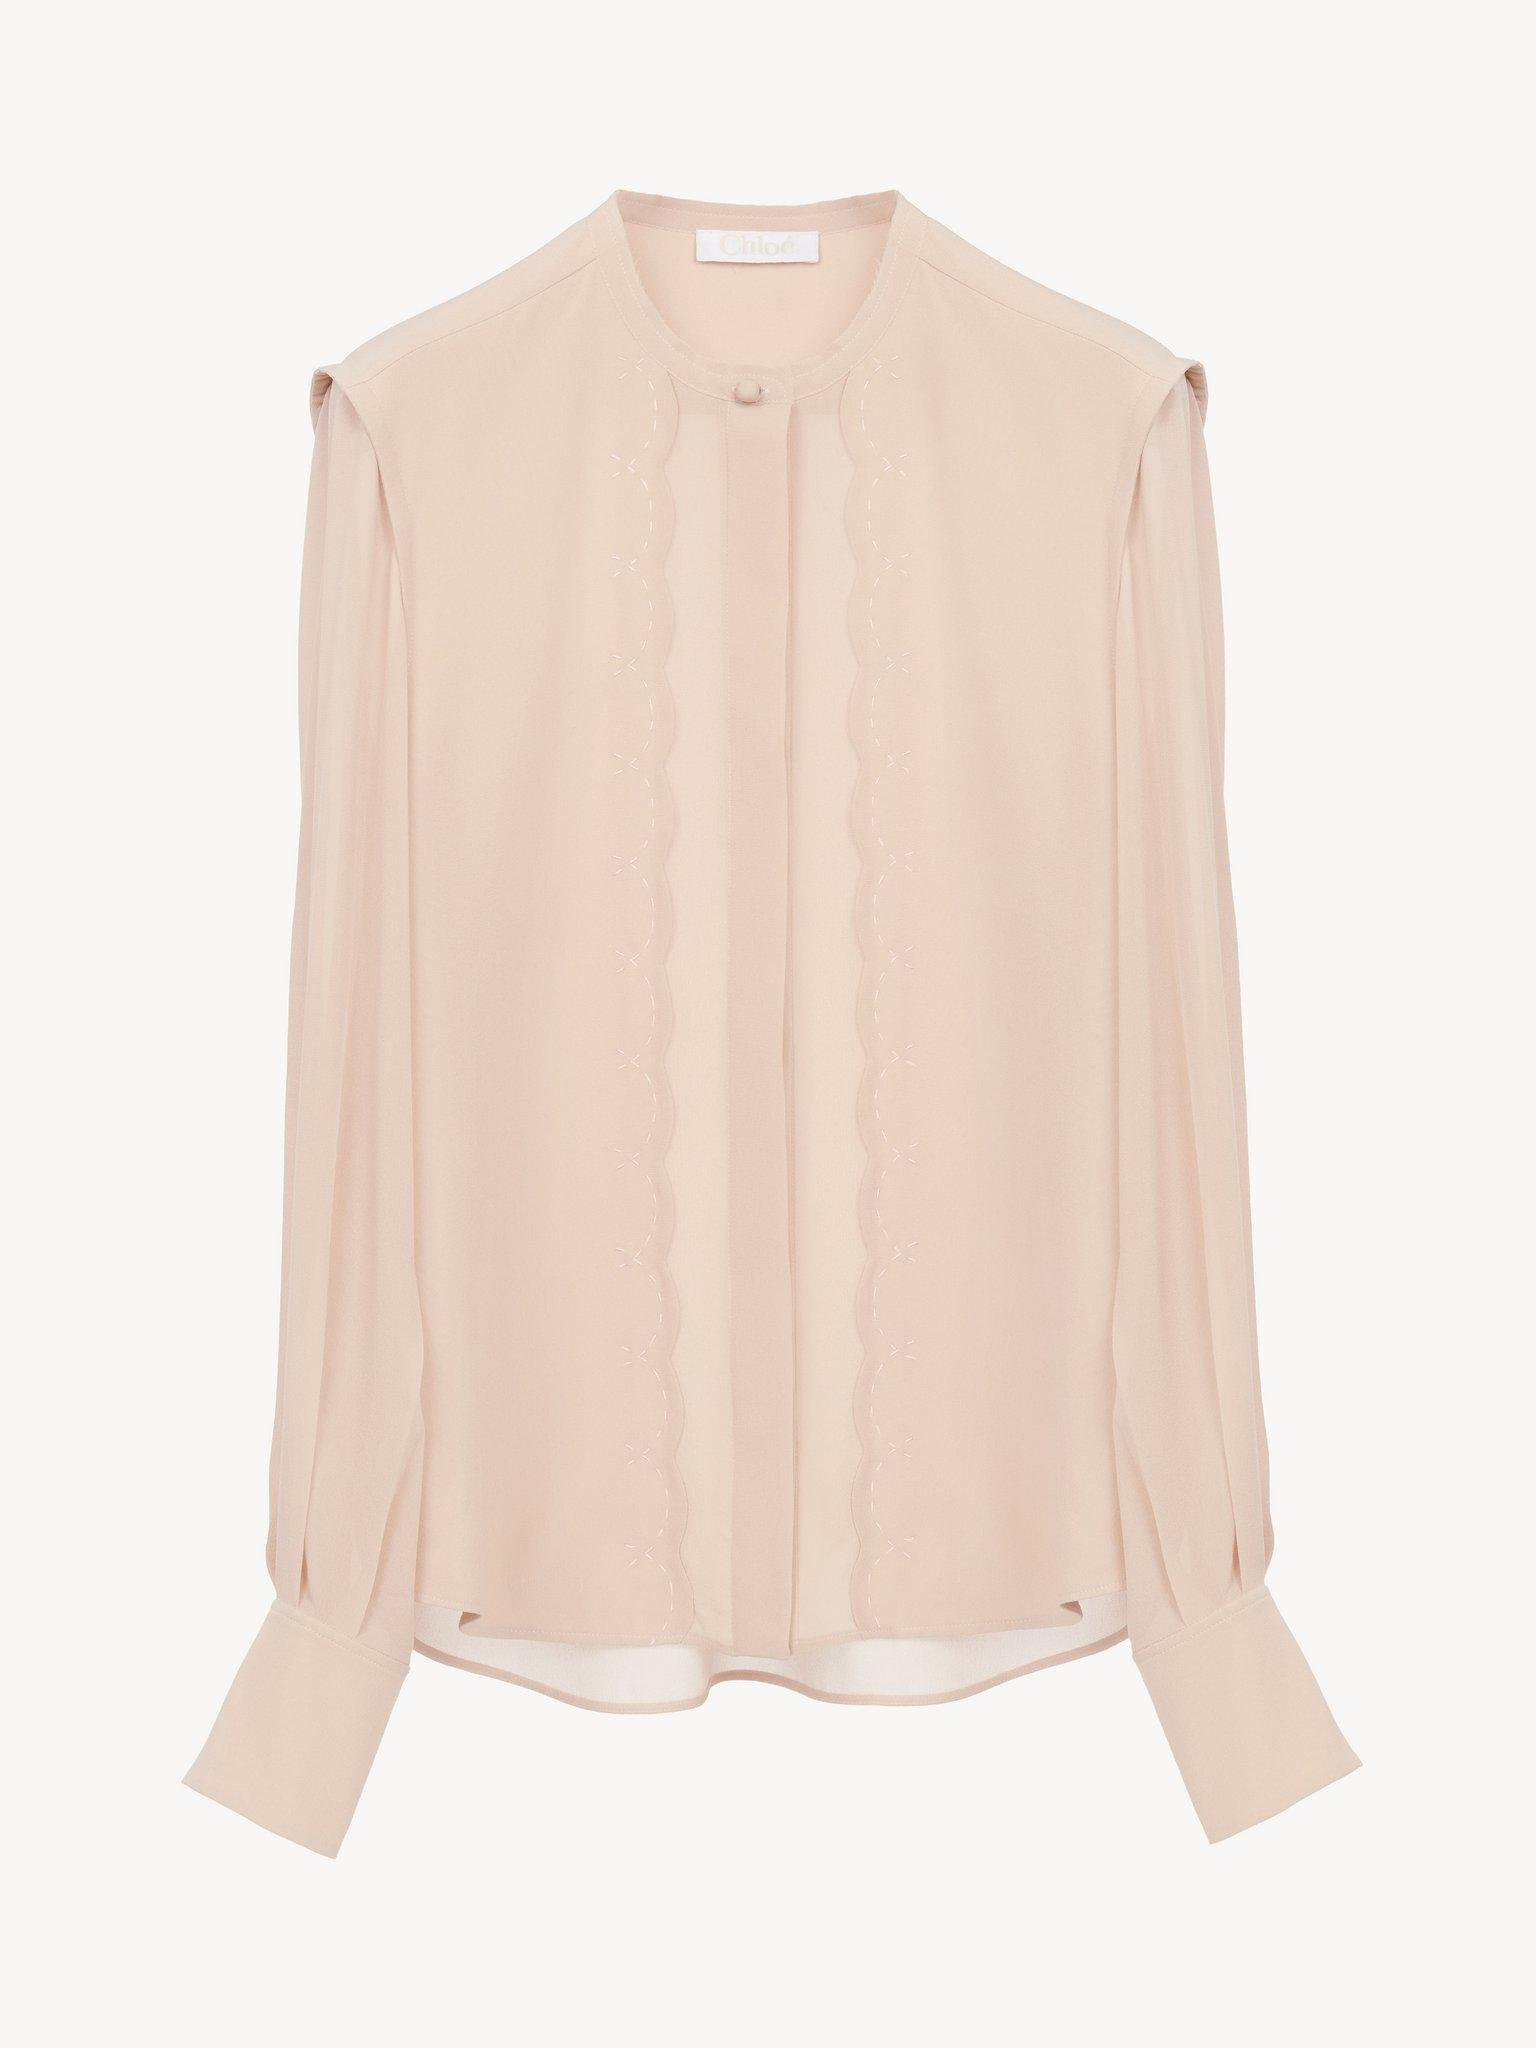 SCALLOP-EMBROIDERED BLOUSE